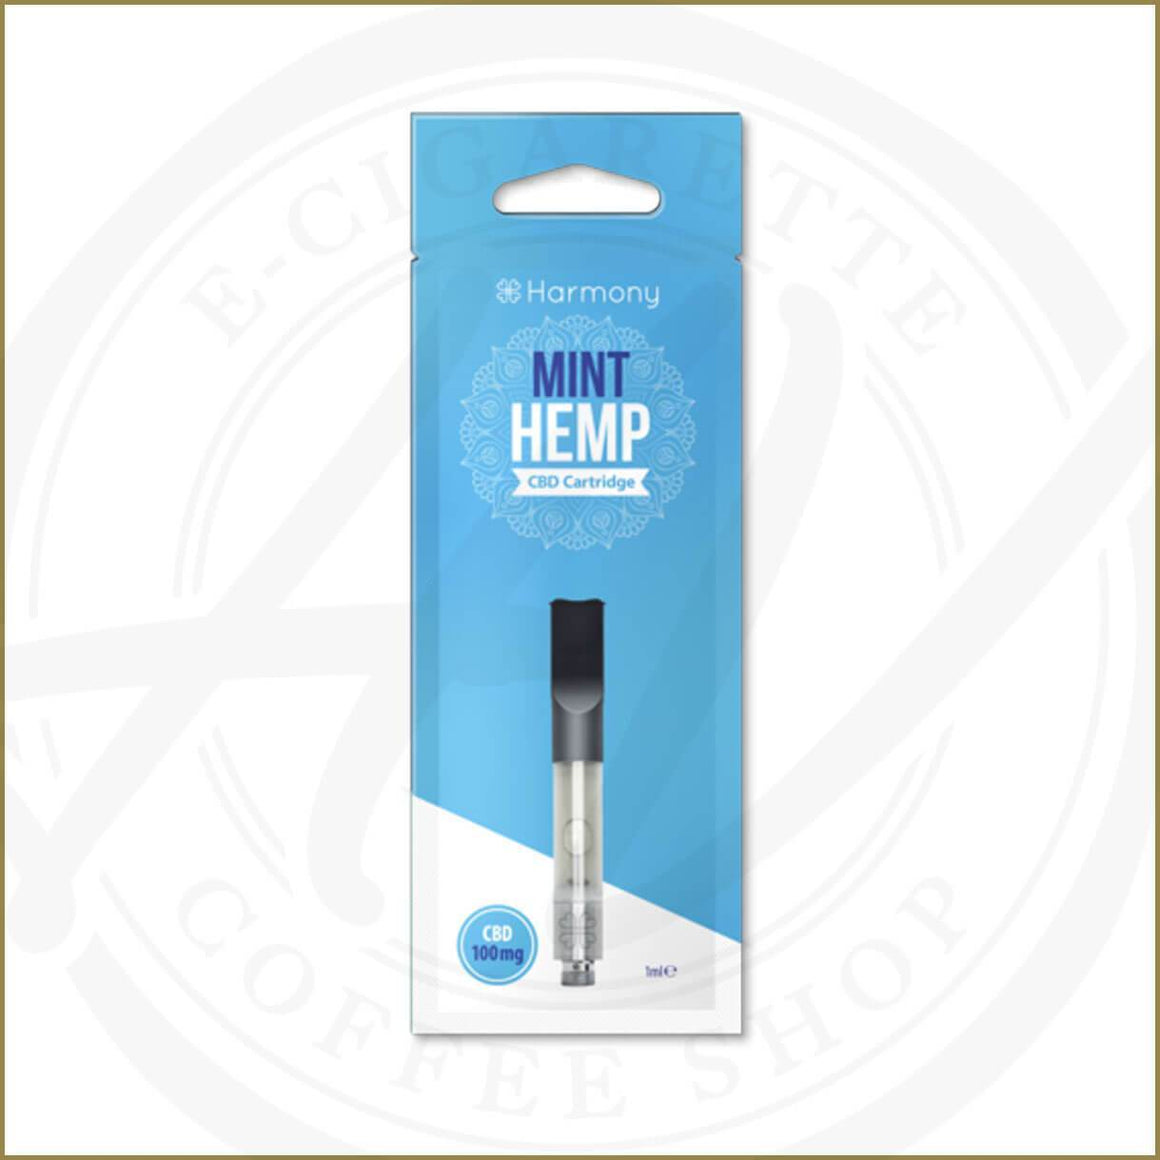 CBD - Mint Hemp Cartridge